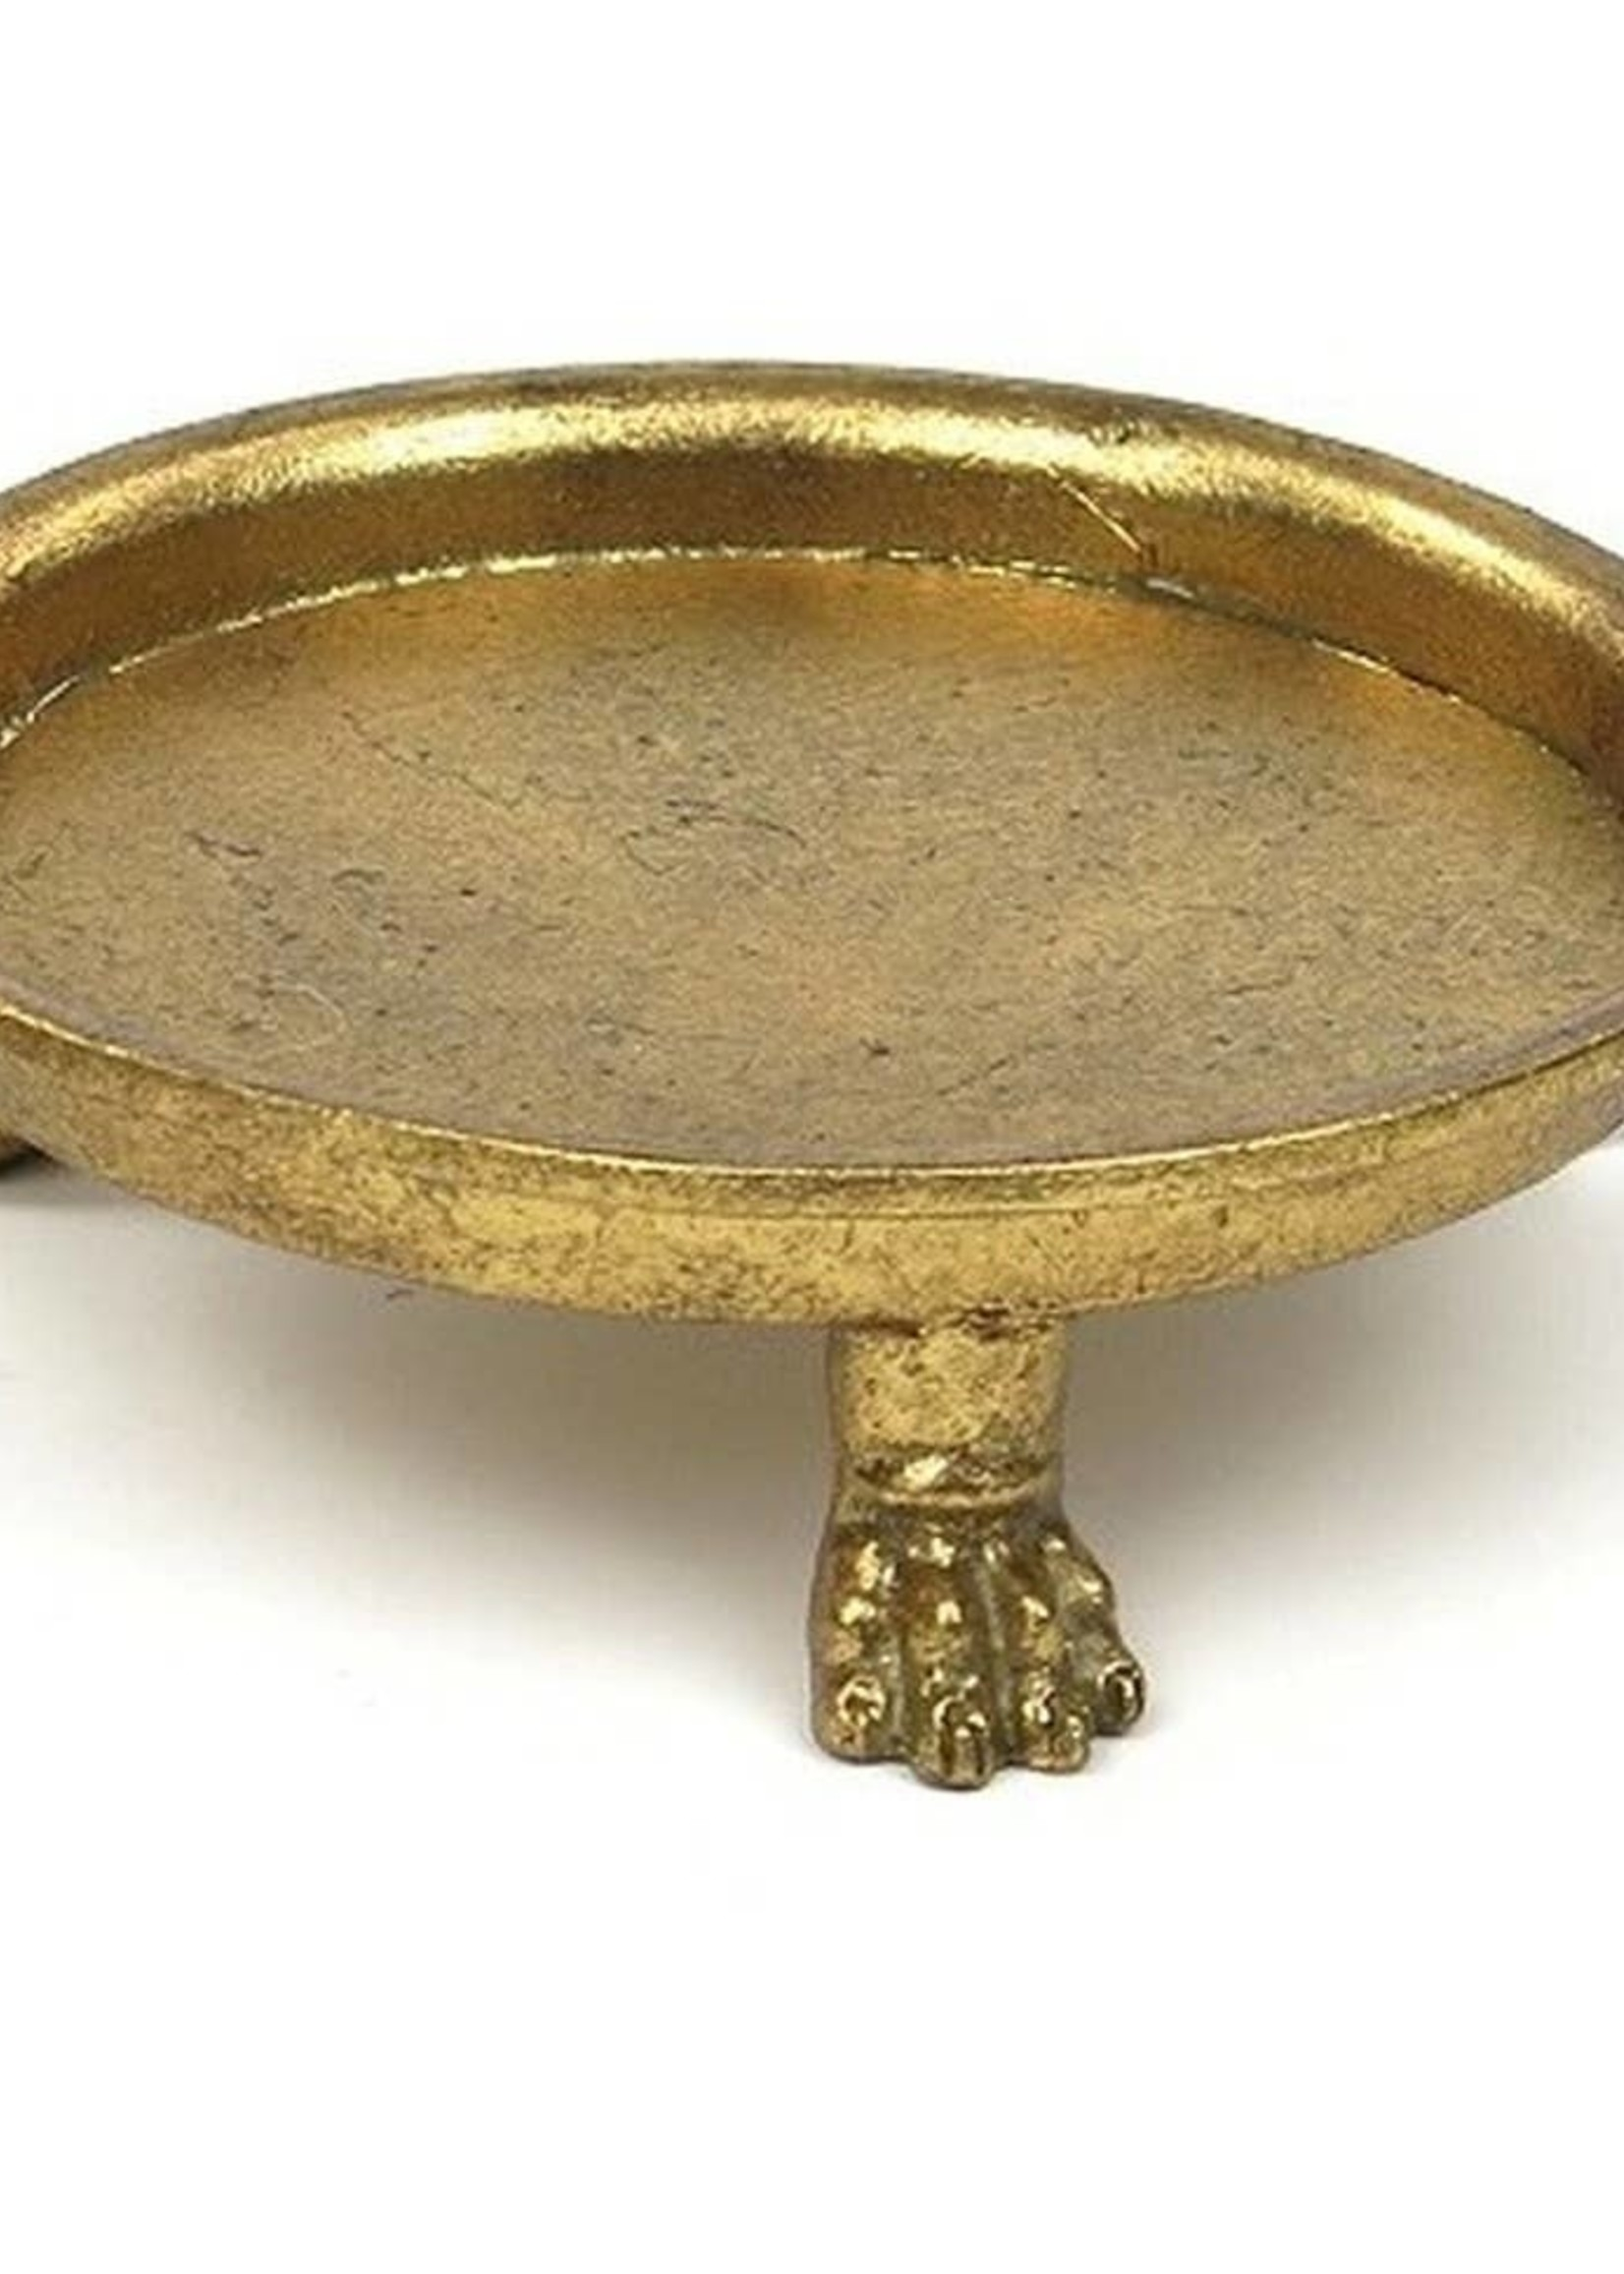 Metal Footed Dish in Gold Leaf